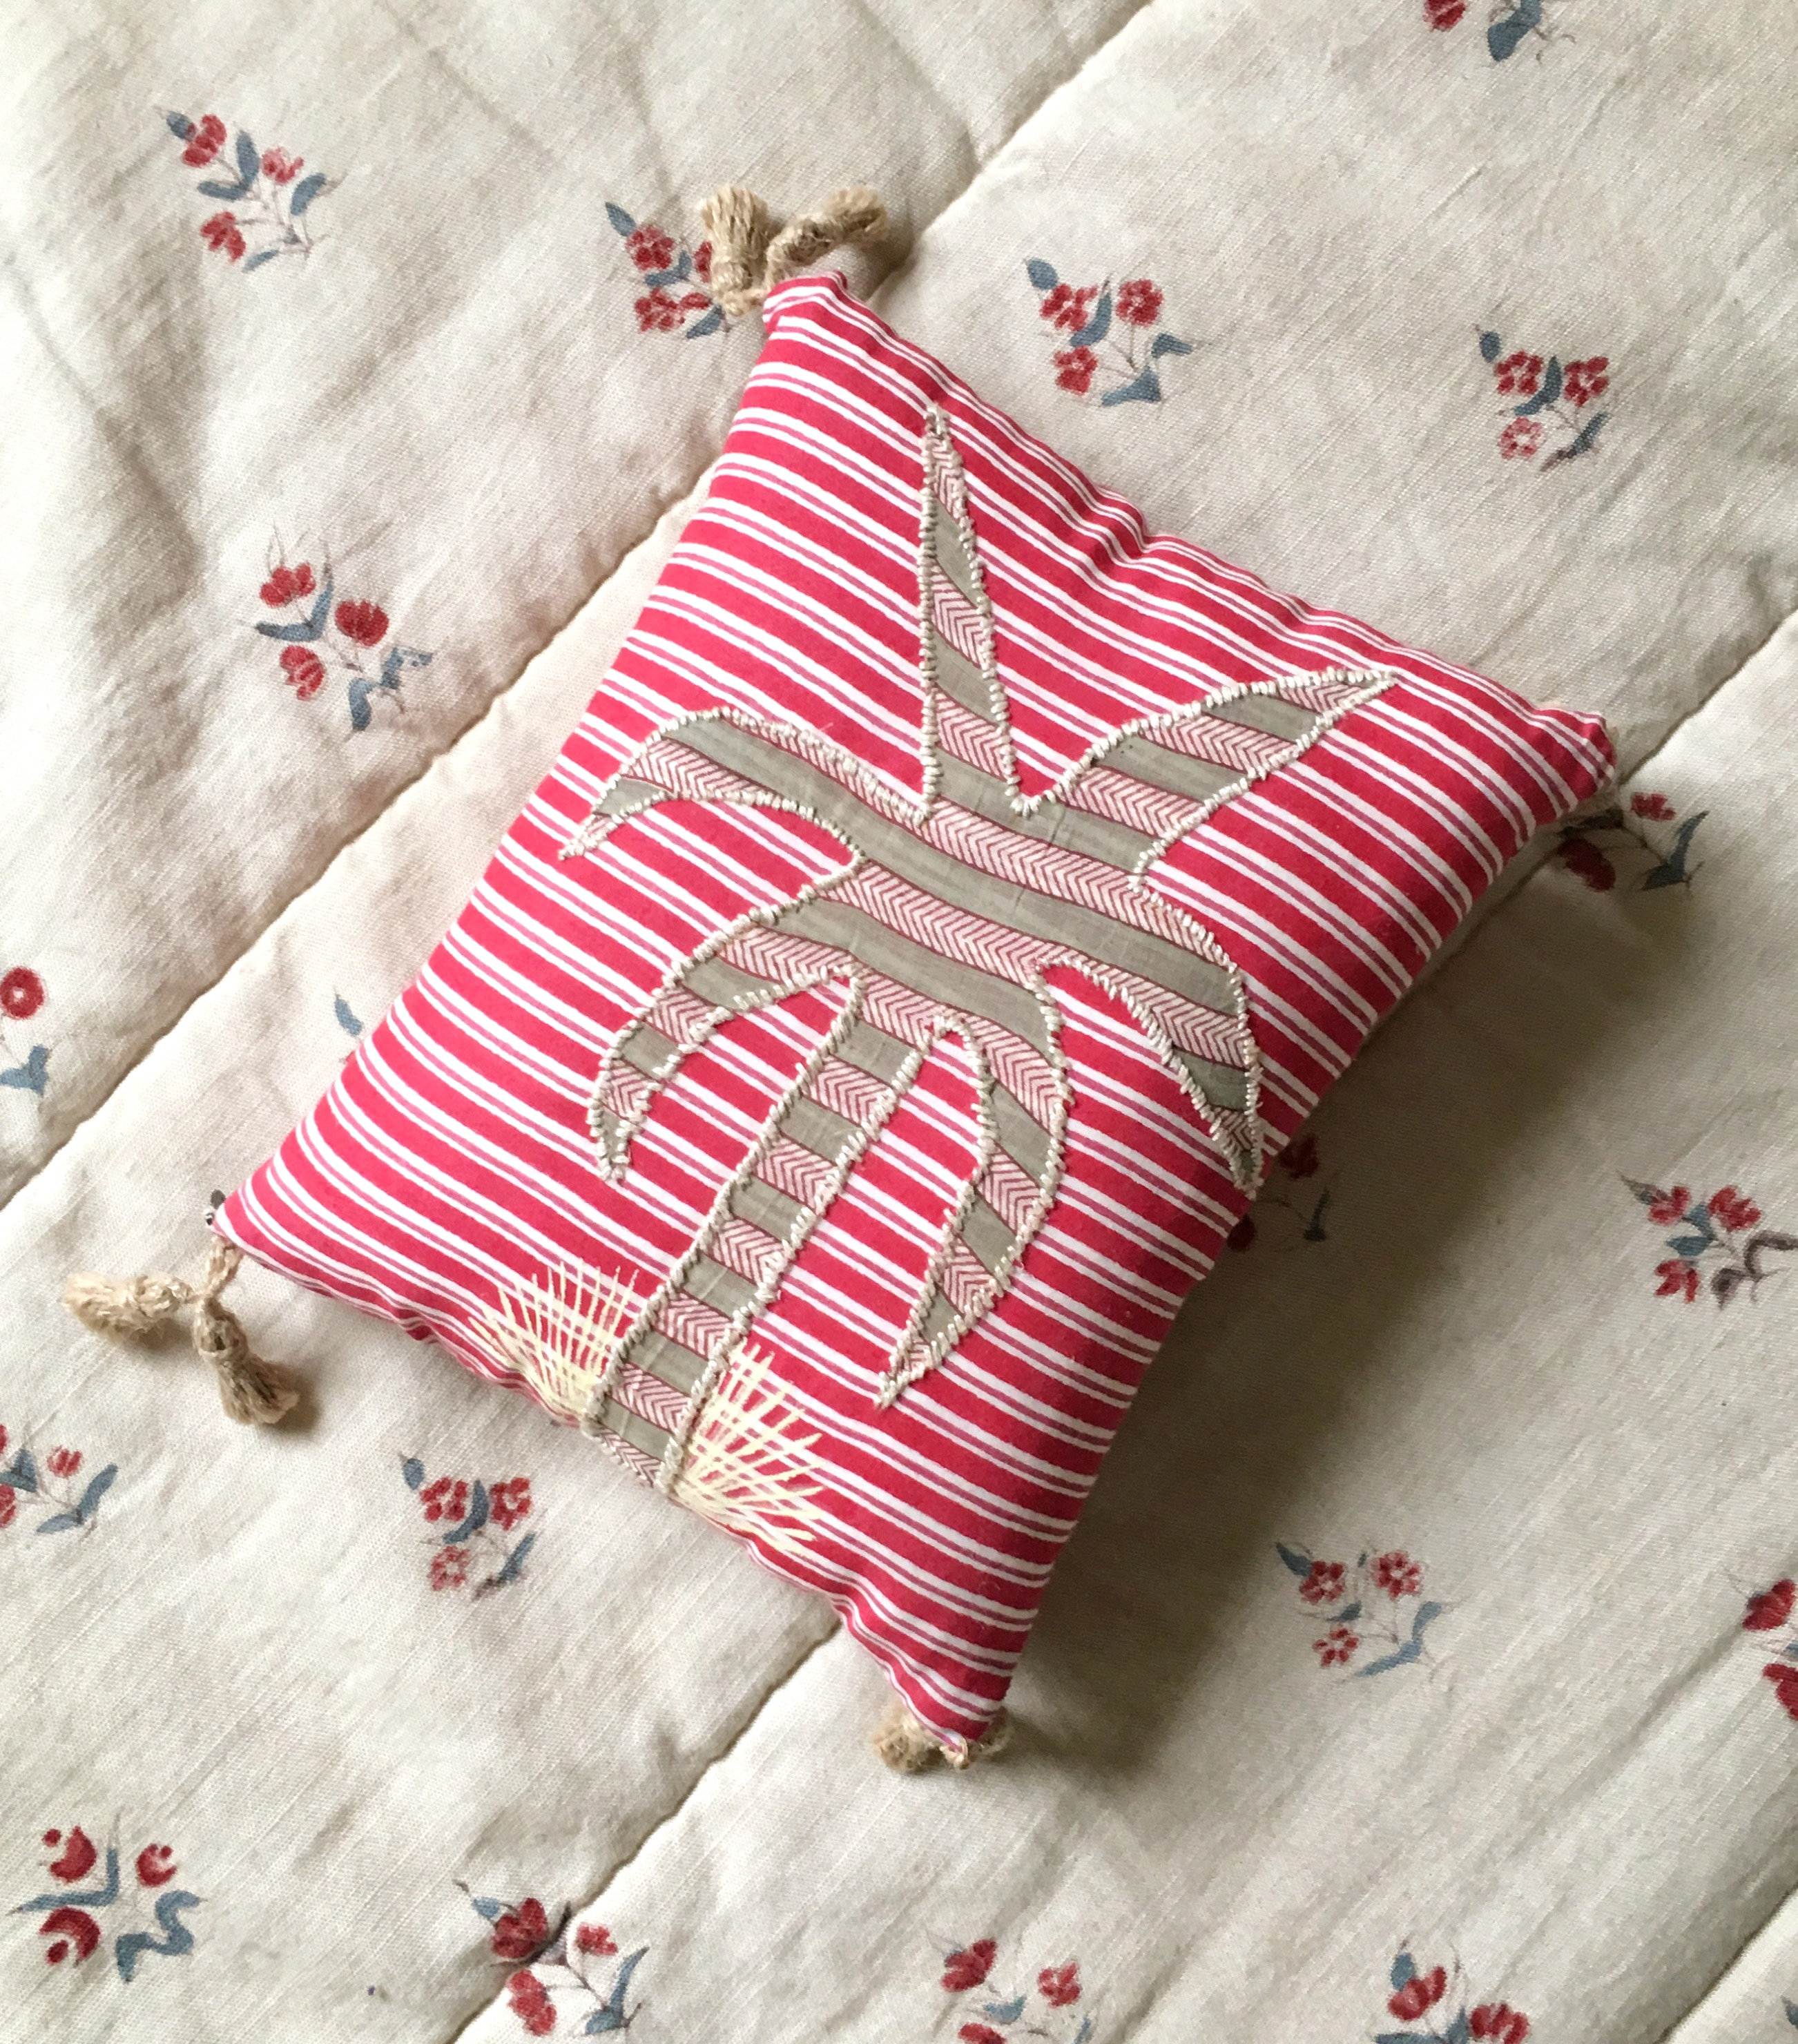 thepalmist_poetry cushions_Palmier d'Asi